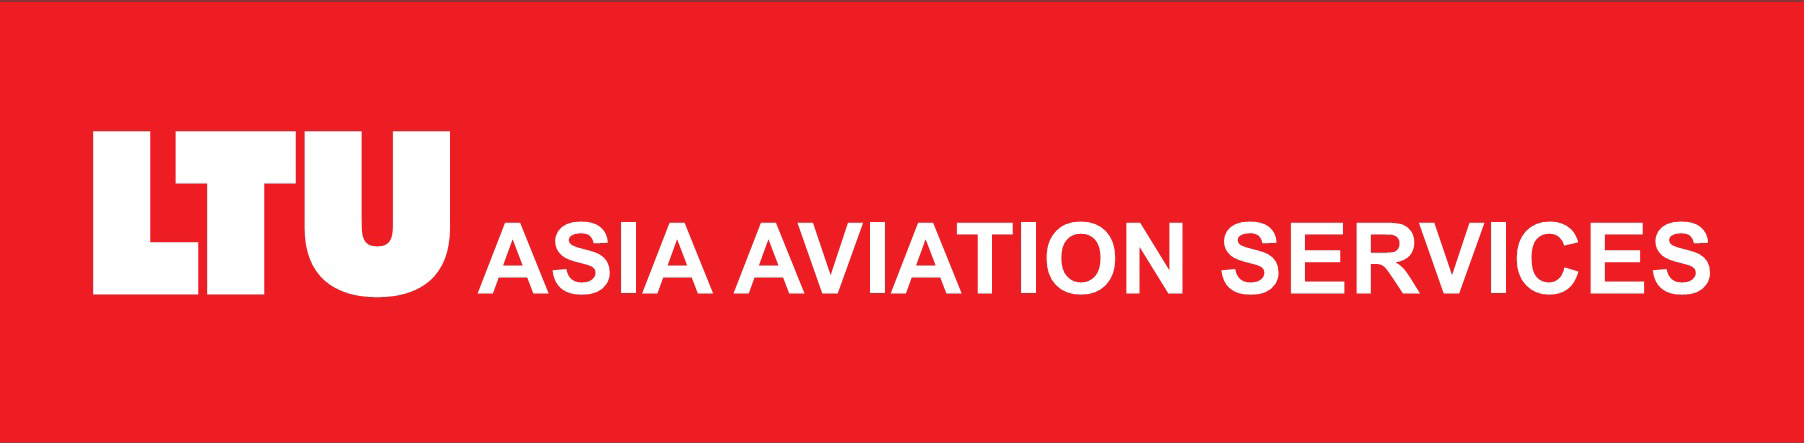 LTU Asia Aviation Services